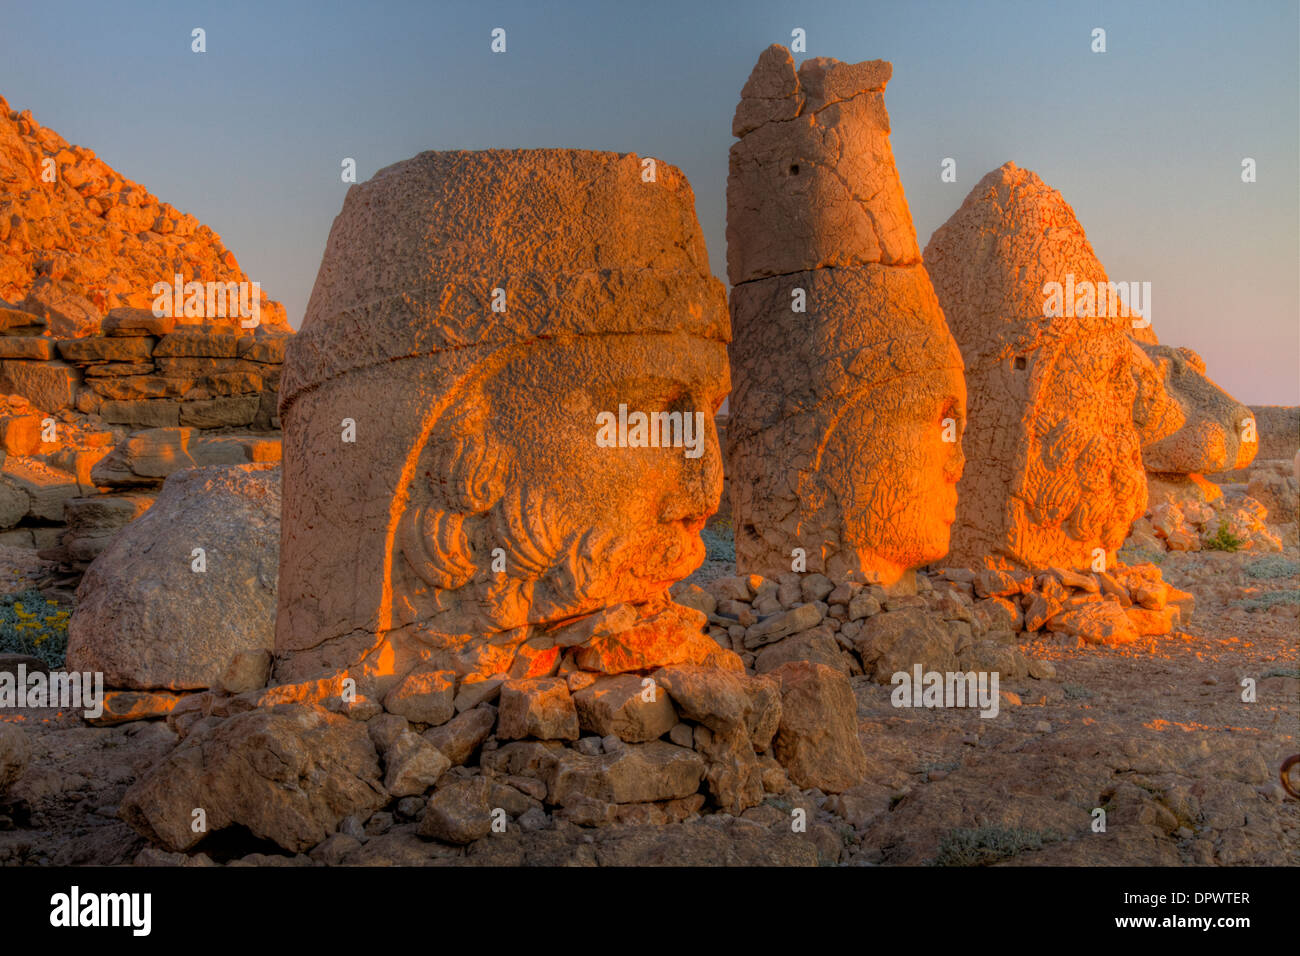 Huge sculpted heads Mt. Nemrut National Park Turkey Ancient remnants of 2,000 year old Commagene culture on 7,000 foot mountain - Stock Image